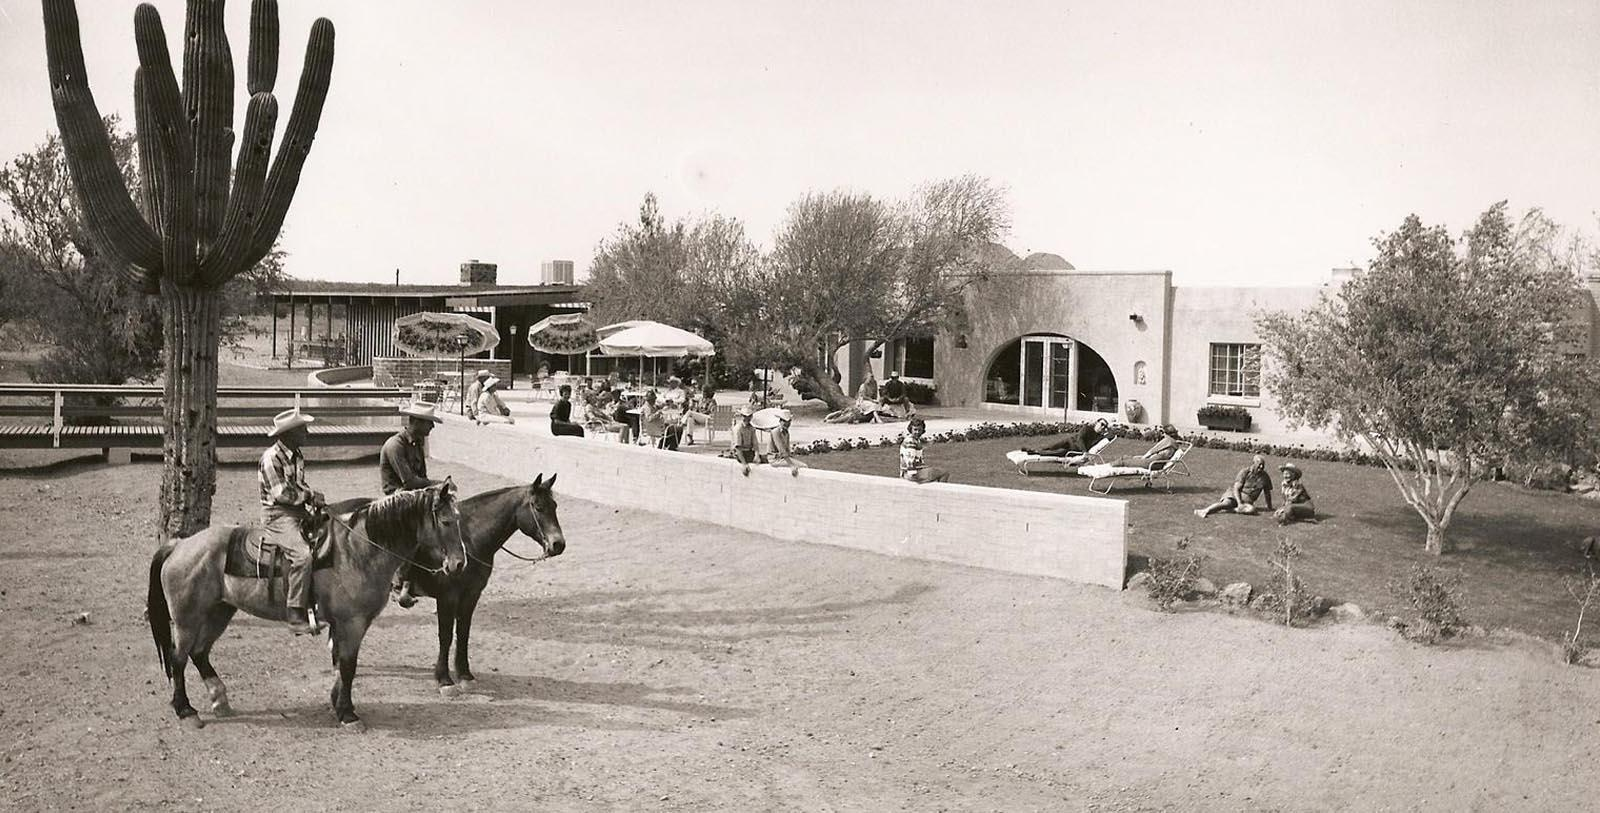 Historic image of White Stallion Ranch, 1900, Member of Historic Hotels of America, in Tuscan, Arizona, Discover